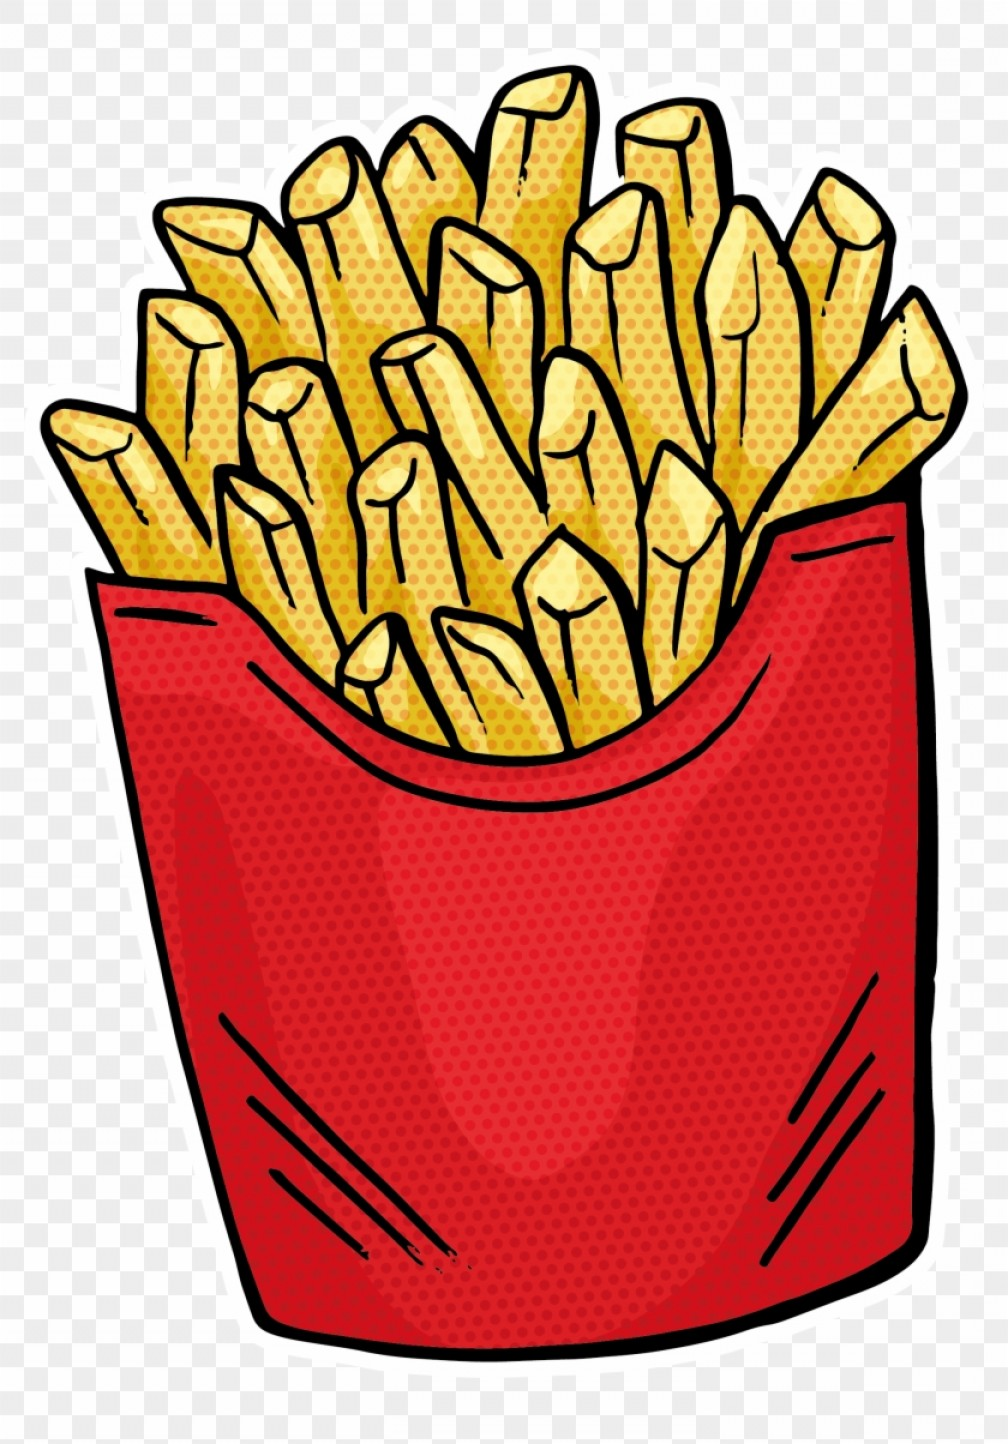 Fries Vector: Mianigdhfrench Fries Fast Food Hamburger Junk Food Food Vector Png